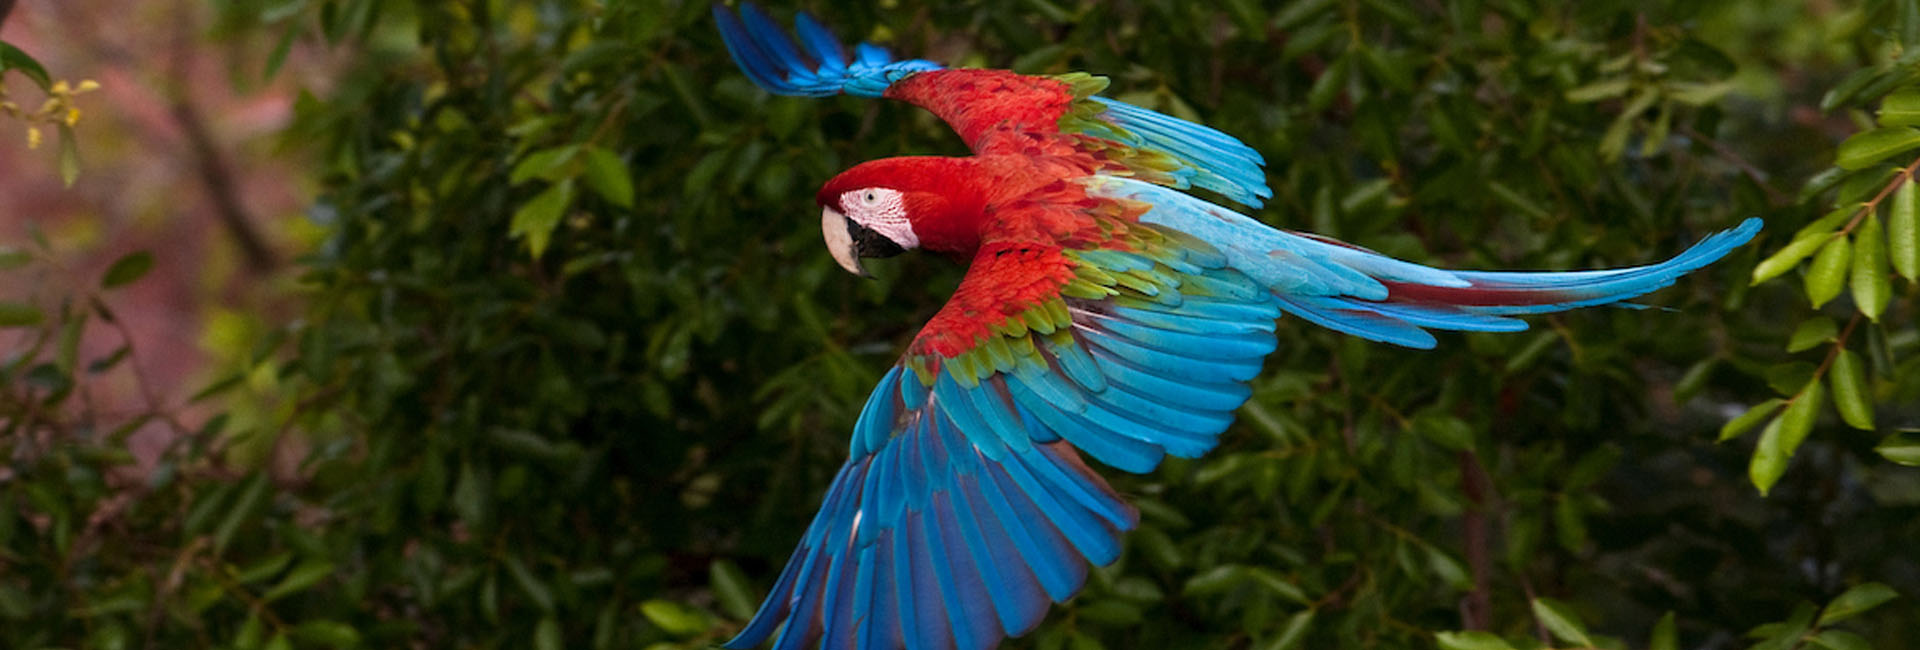 Macaw in the Ecuadorian Amazon